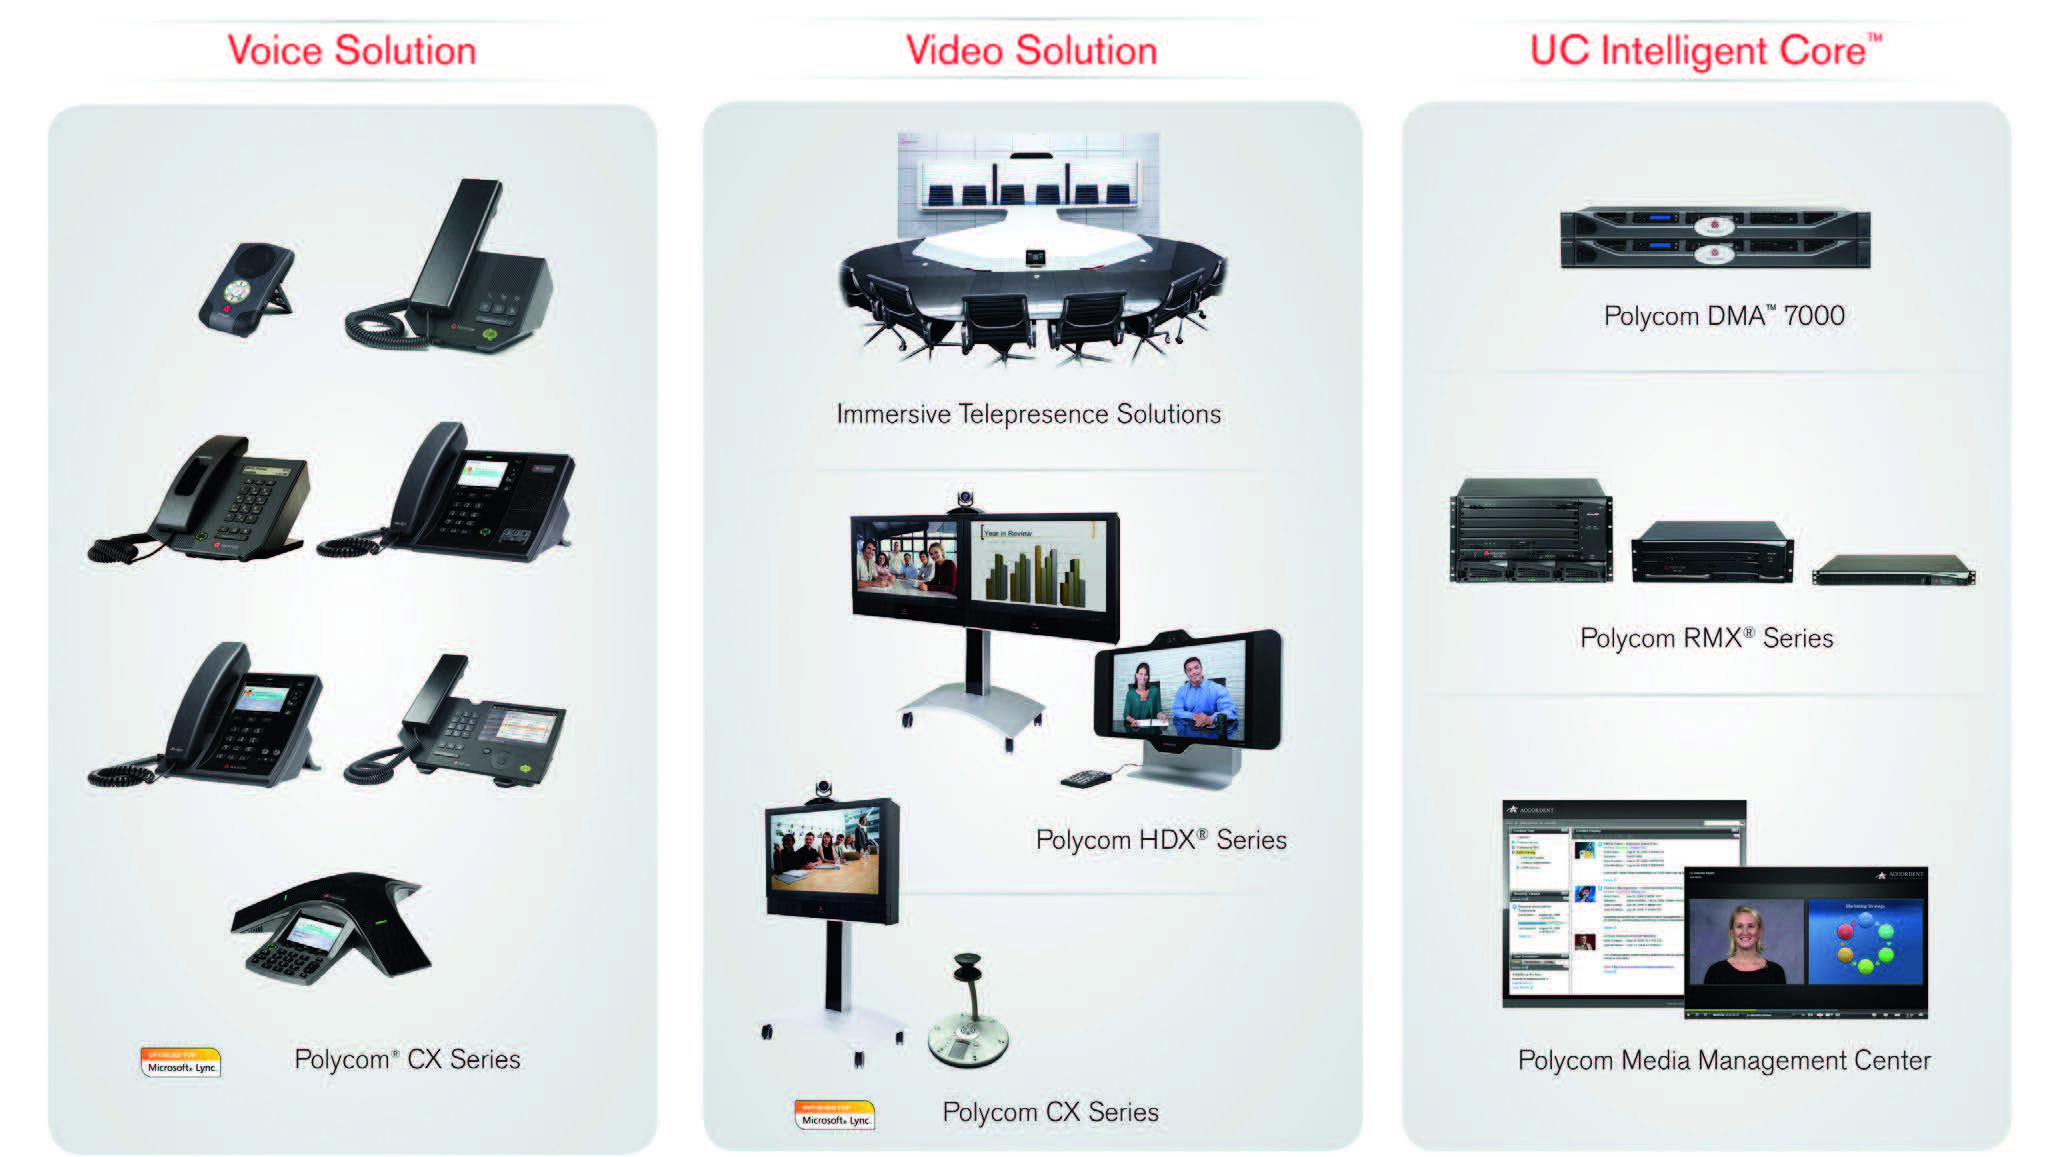 Polycom solution images